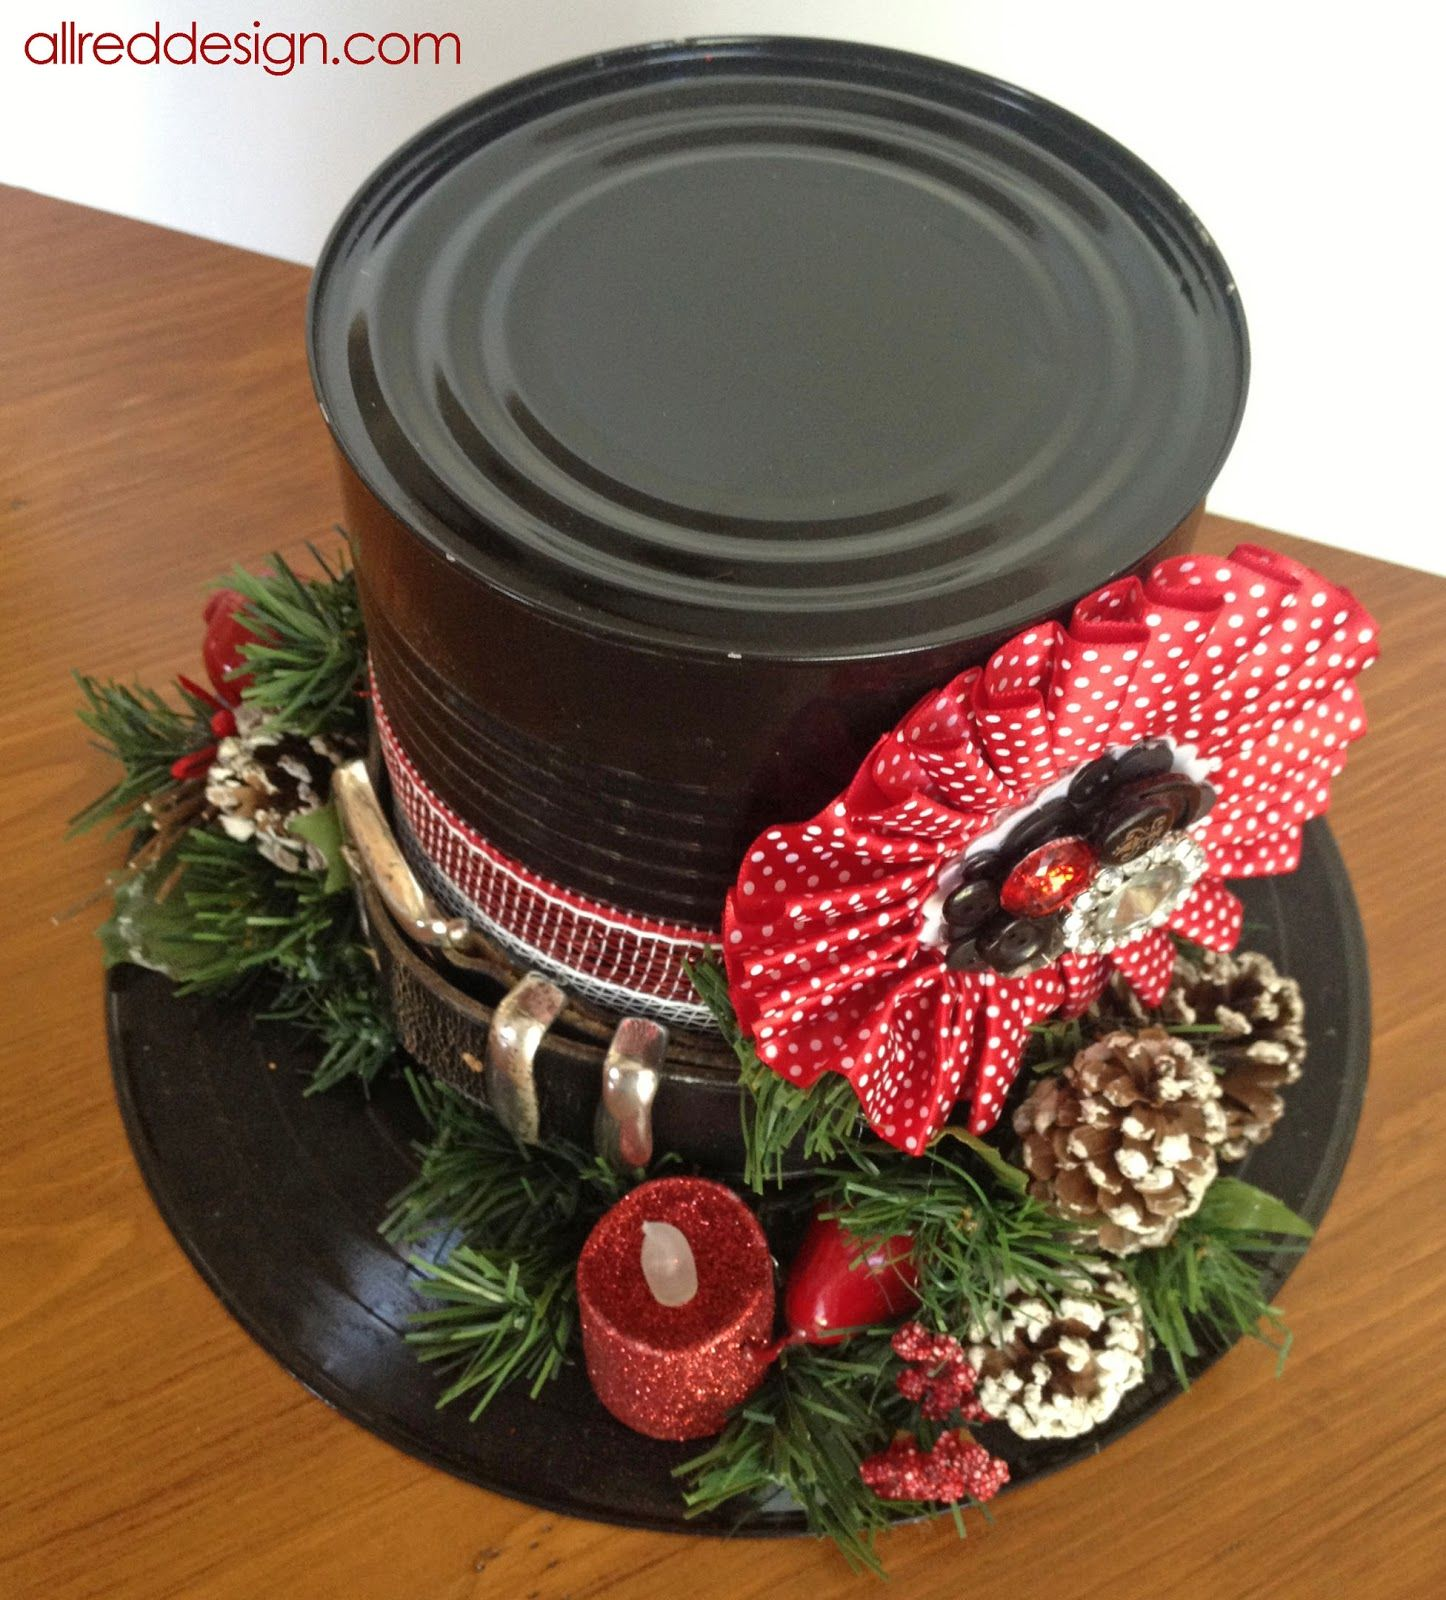 Allred Design Blog: Snowman Holiday Hat Tutorial--love the vinyl record for the brim! (smb: use an old, scratched holiday album [50 cents at thrift store] and memorabilia.)